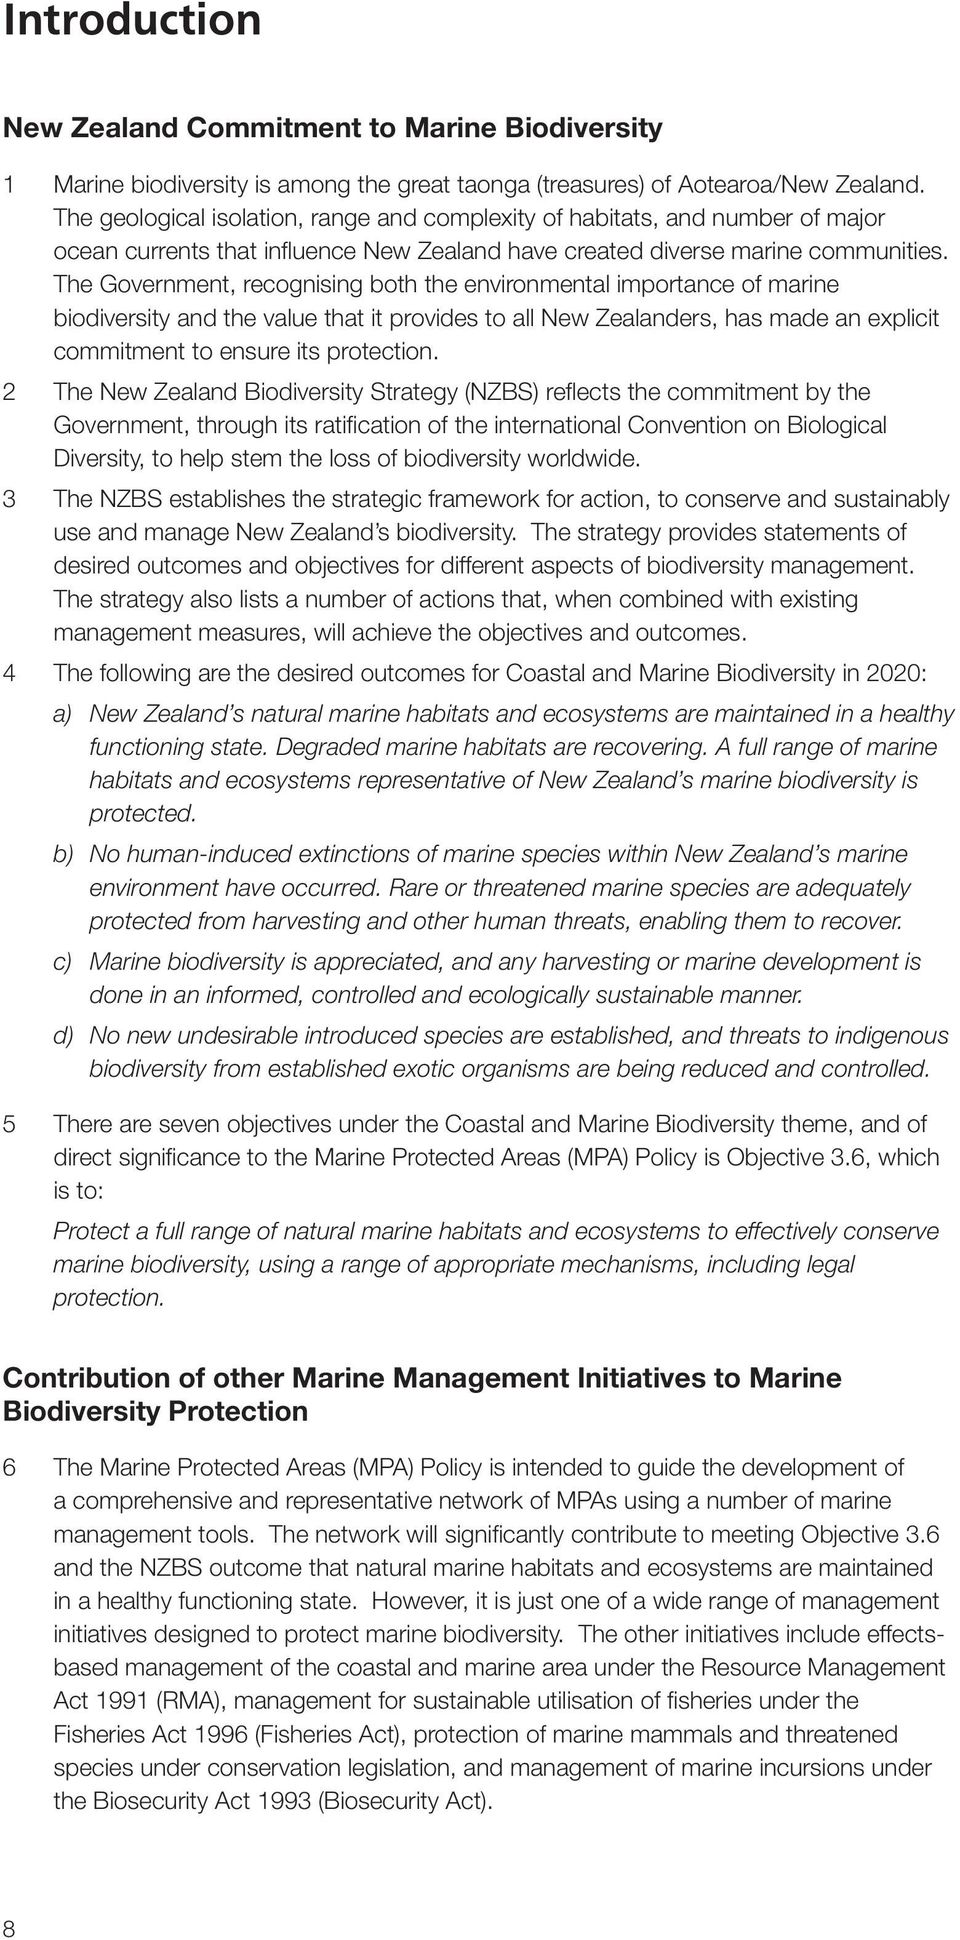 The Government, recognising both the environmental importance of marine biodiversity and the value that it provides to all New Zealanders, has made an explicit commitment to ensure its protection.